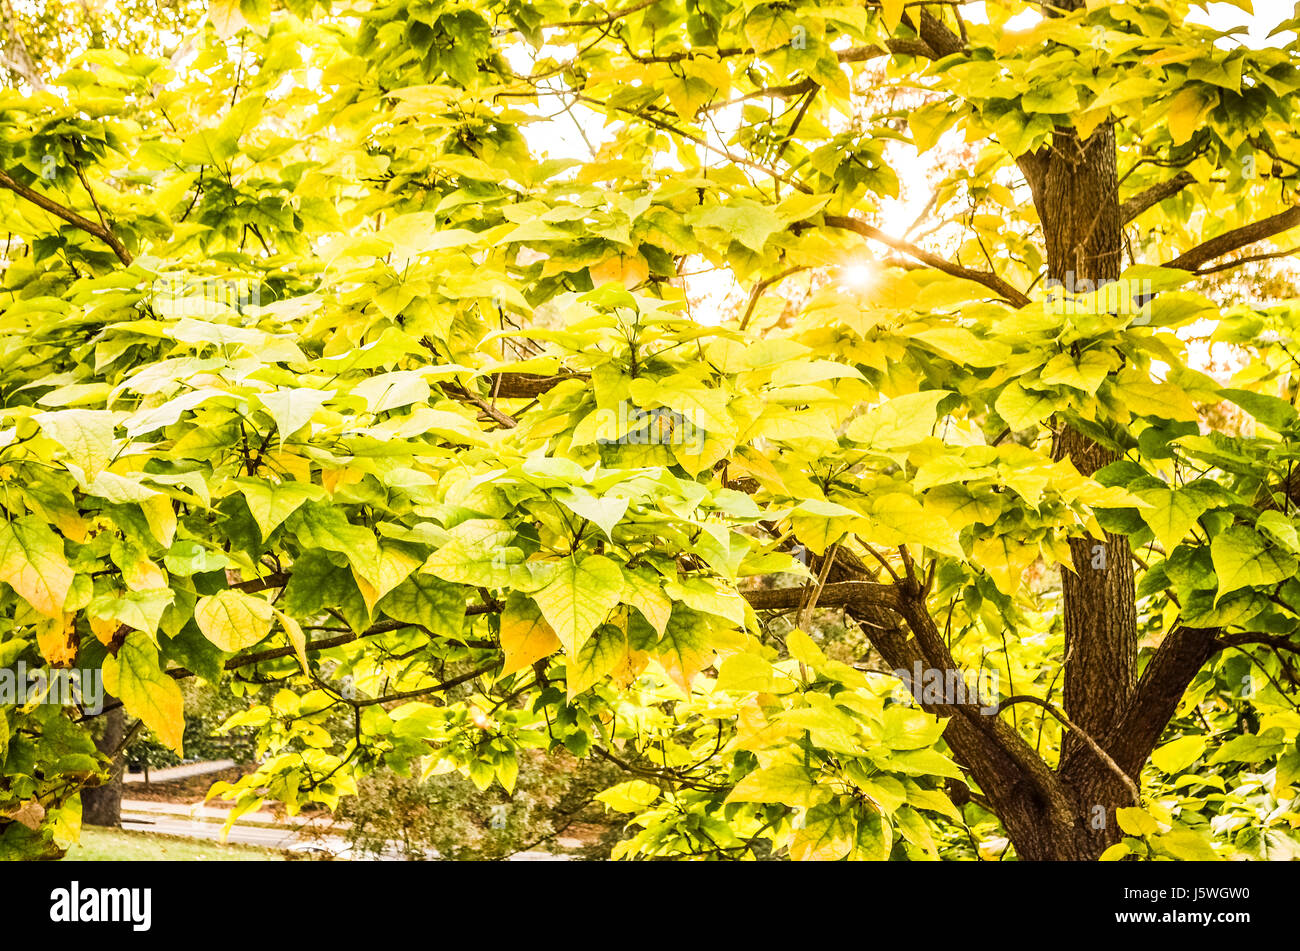 Green And Yellow Eastern Redbud Tree Leaves In Sunlight In Autumn